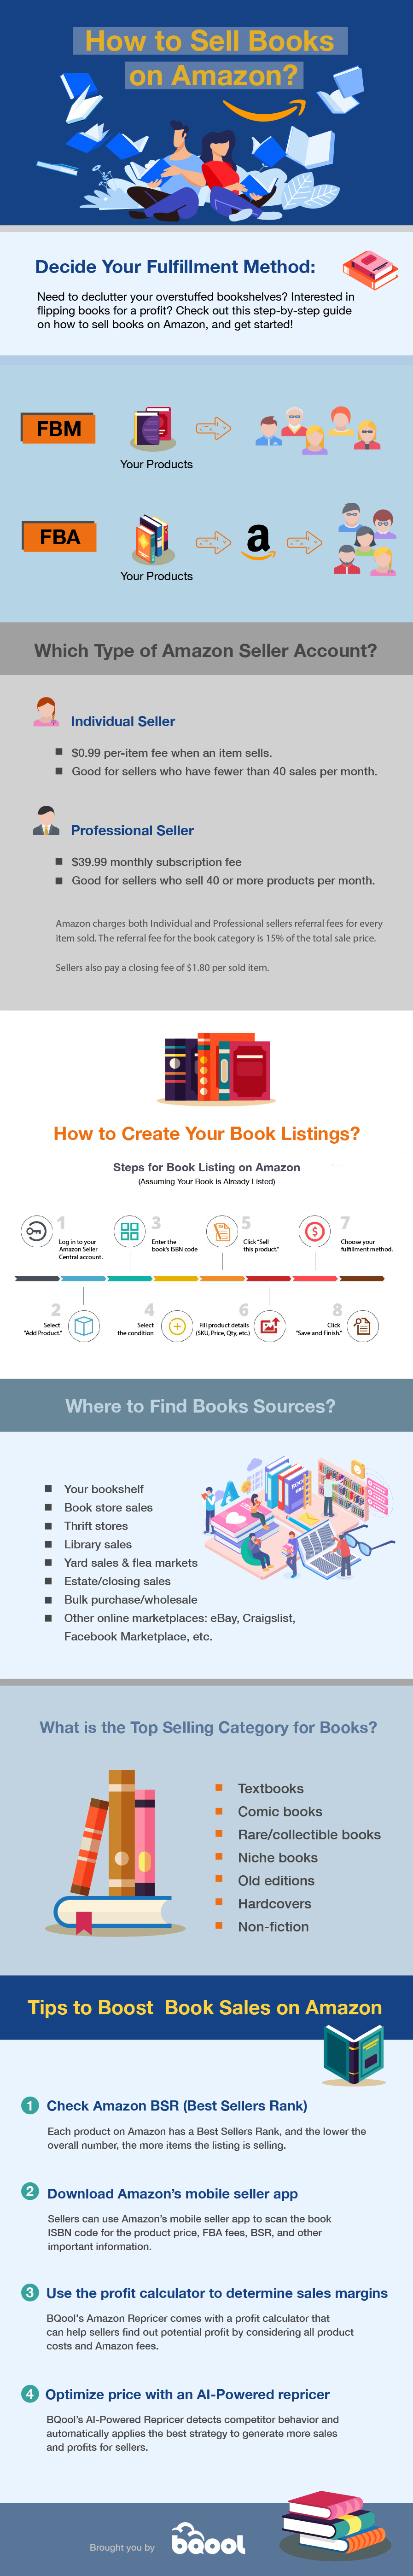 How to Sell Books on Amazon_infographic